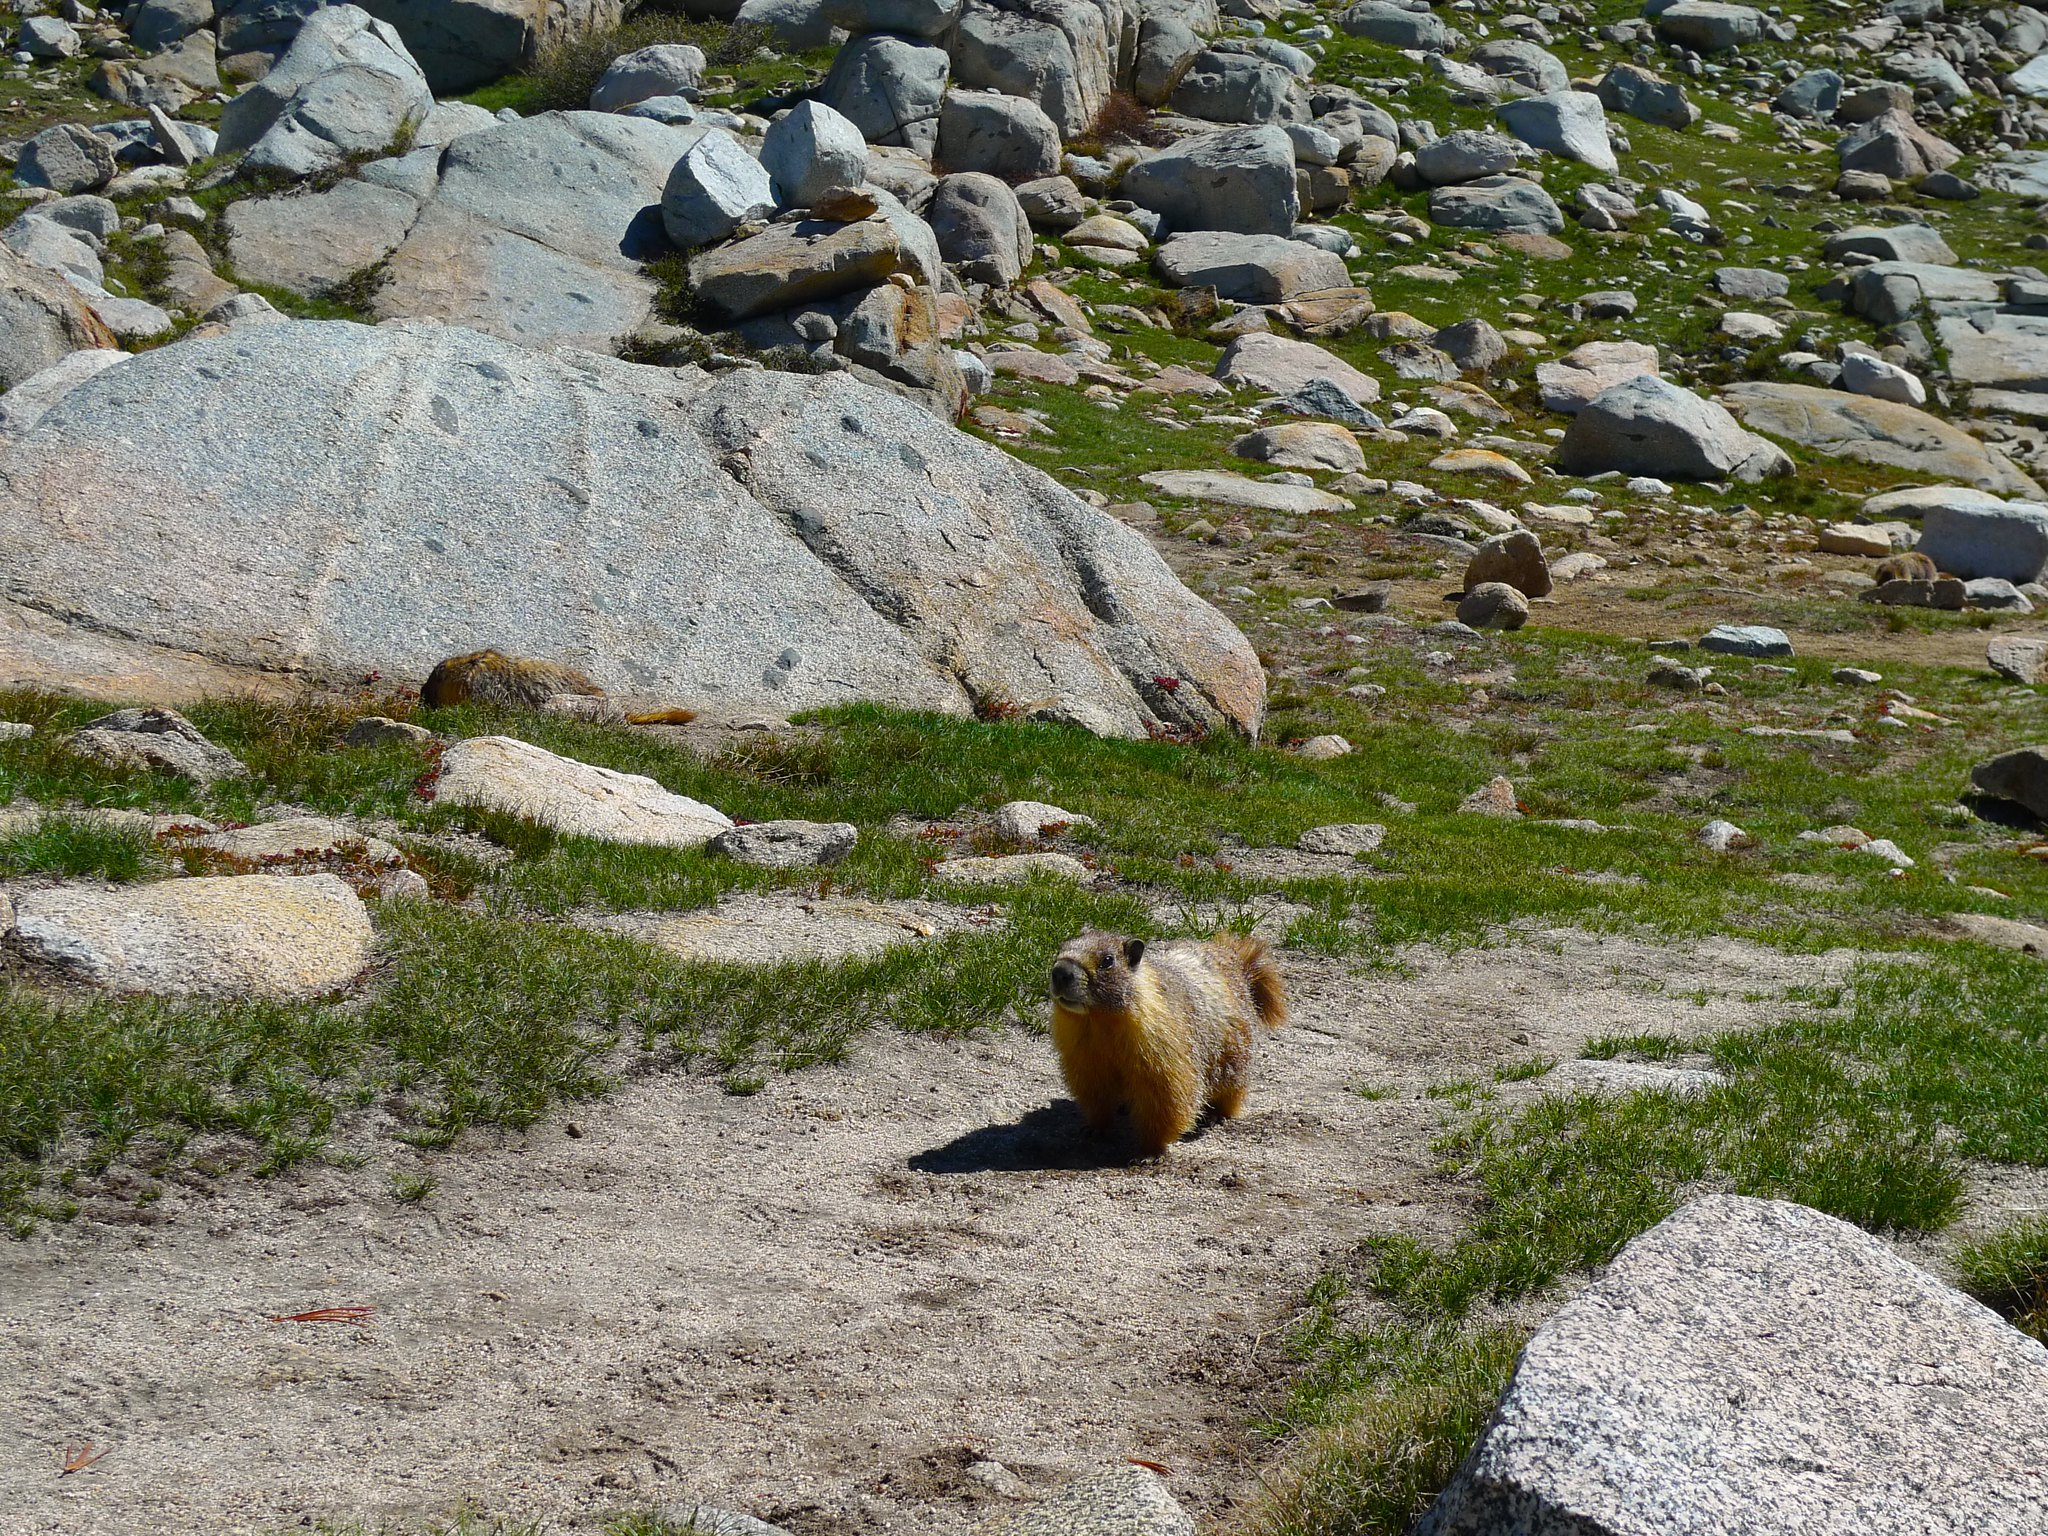 There are THREE marmots in this picture!!!